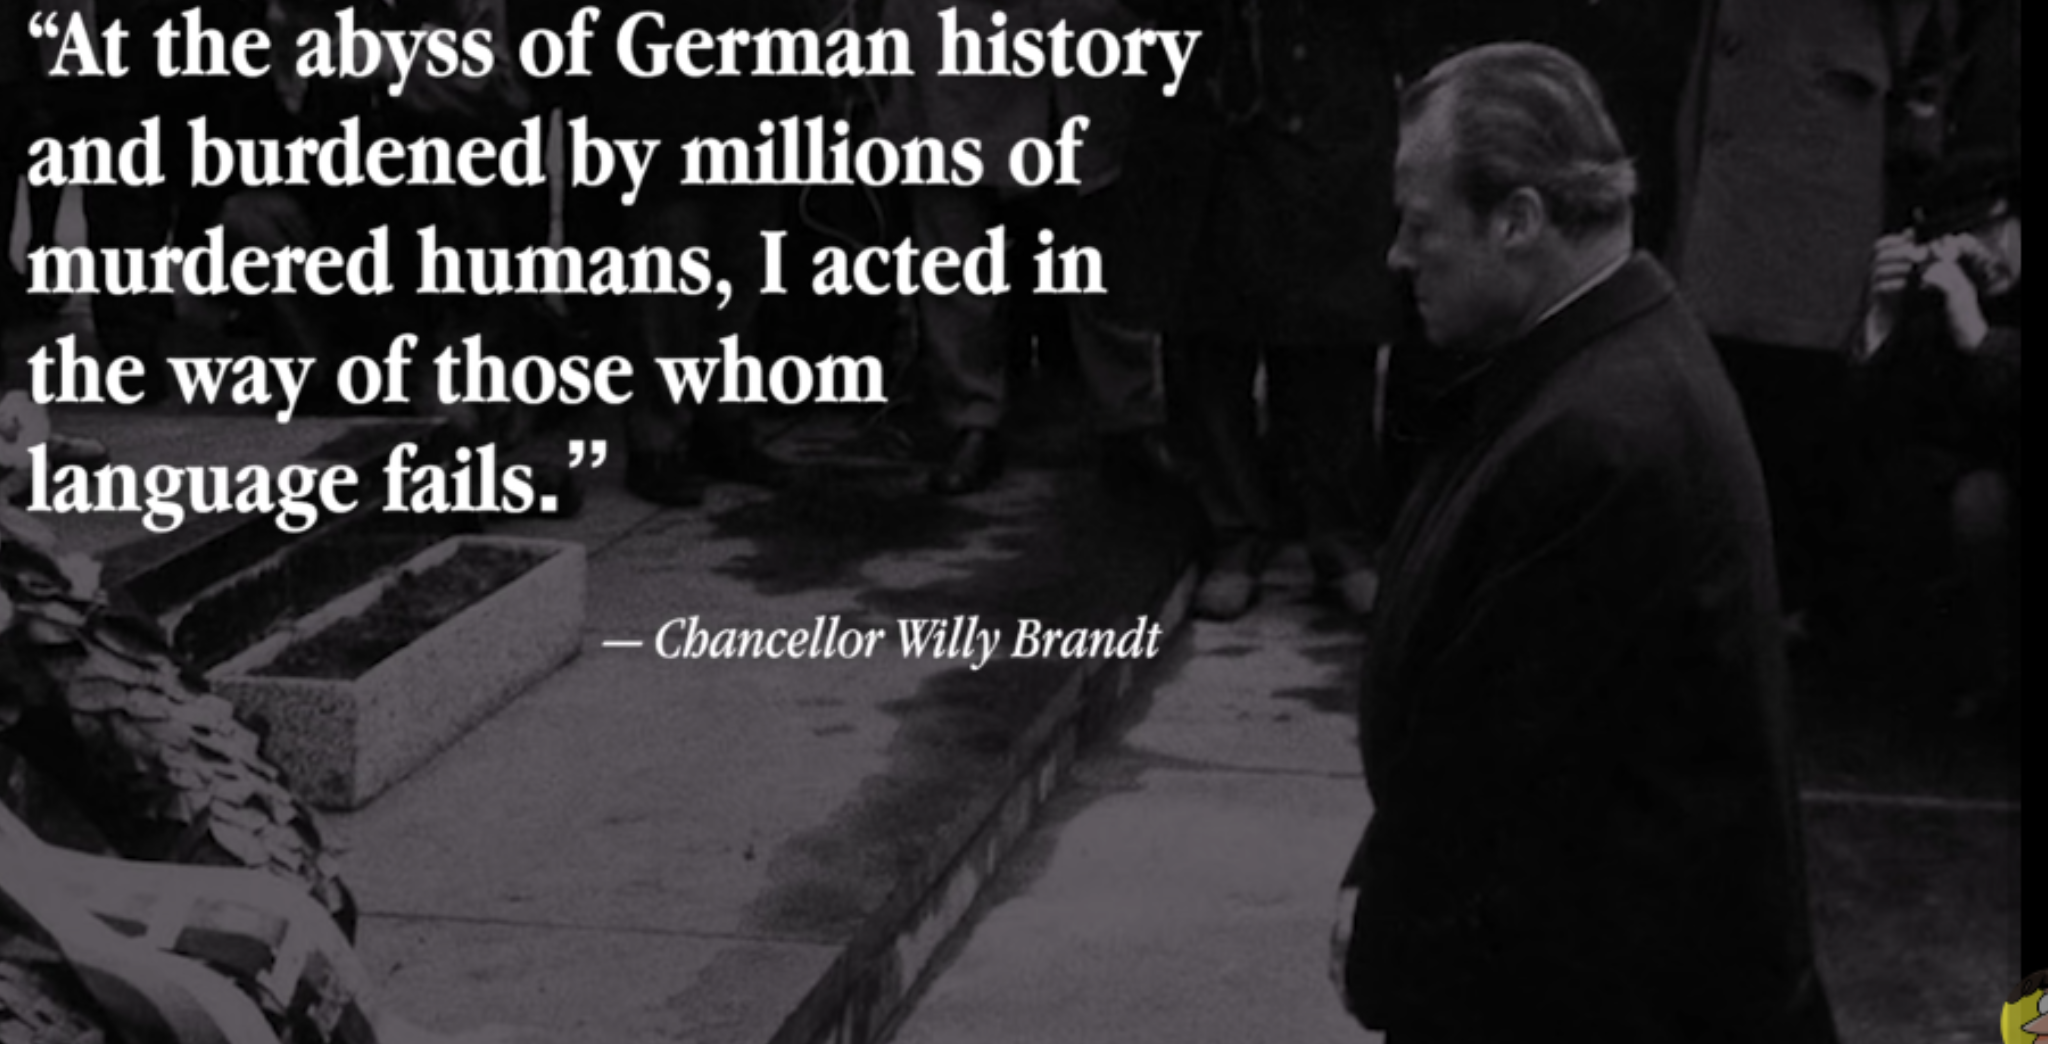 """""""I acted in the way of those whom language fails."""" -Willy Brandt [1920 x 1080]"""